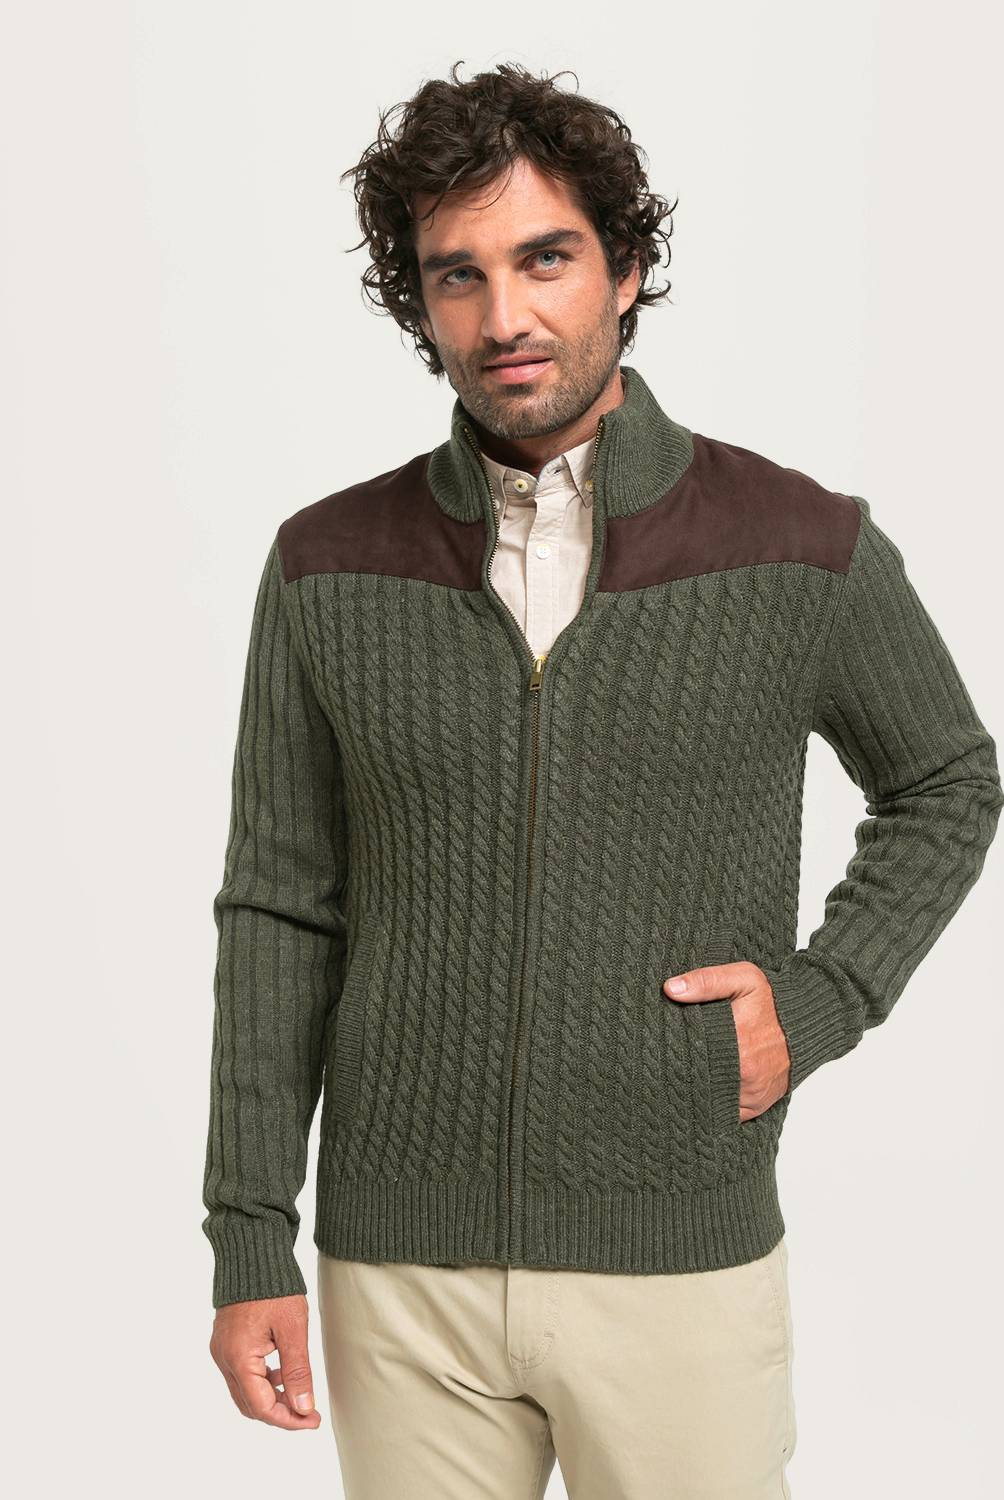 NEWPORT - Sweater Full Zipper Hombre